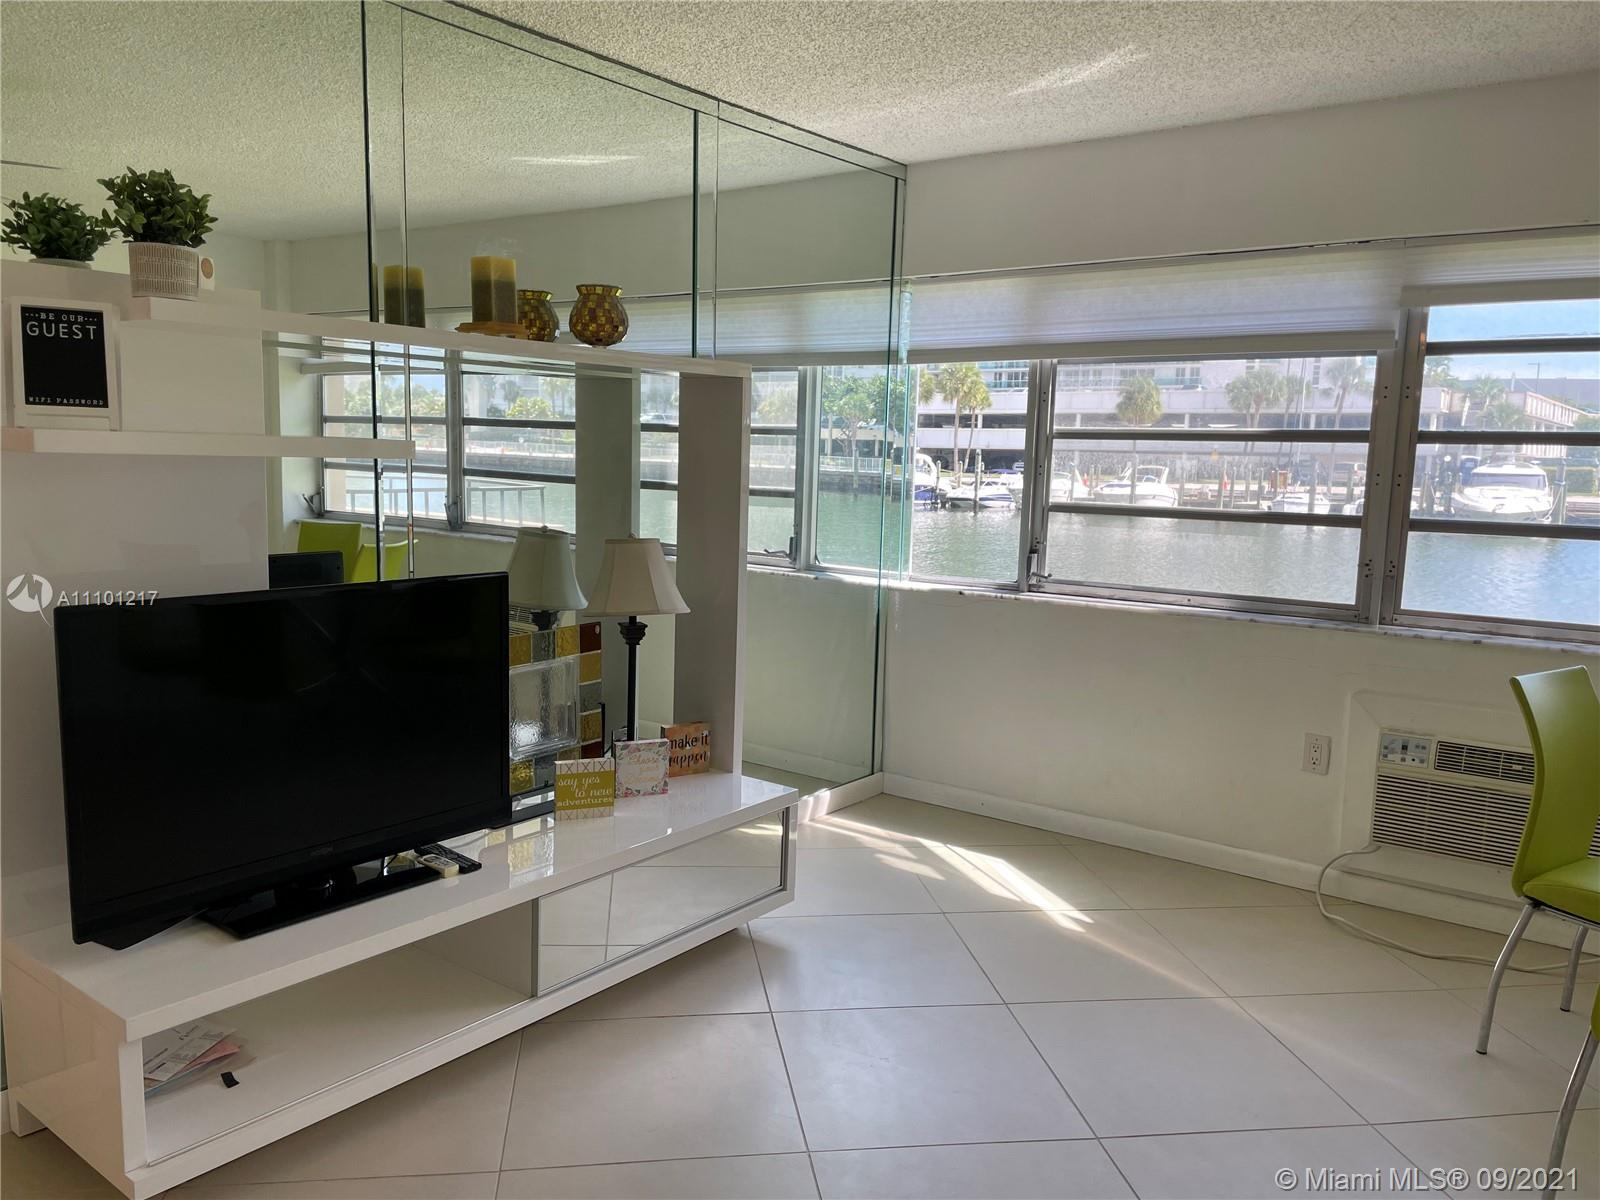 KINGS POINT IMPERIAL COND Condo,For Rent,KINGS POINT IMPERIAL COND Brickell,realty,broker,condos near me